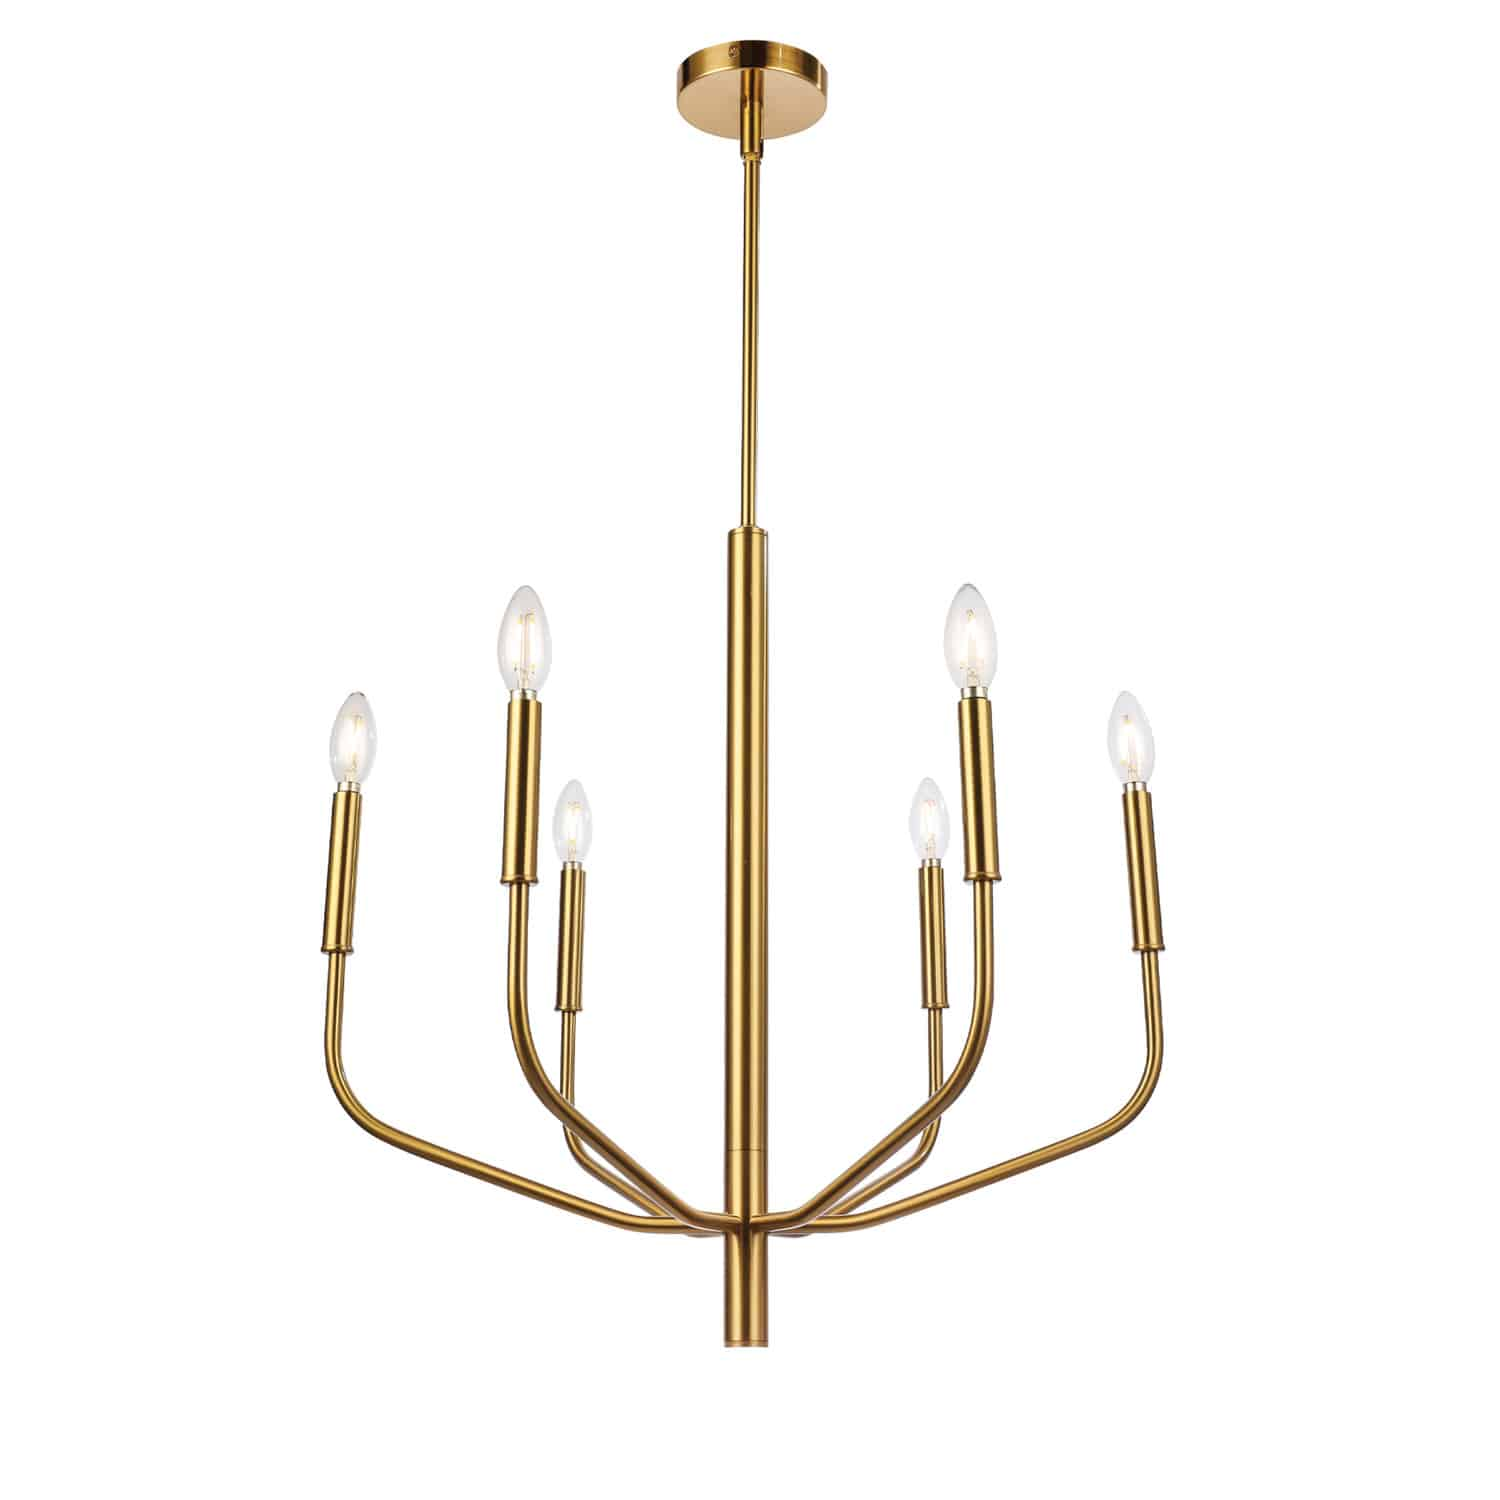 6 Light Incandescent Chandelier, Aged Brass